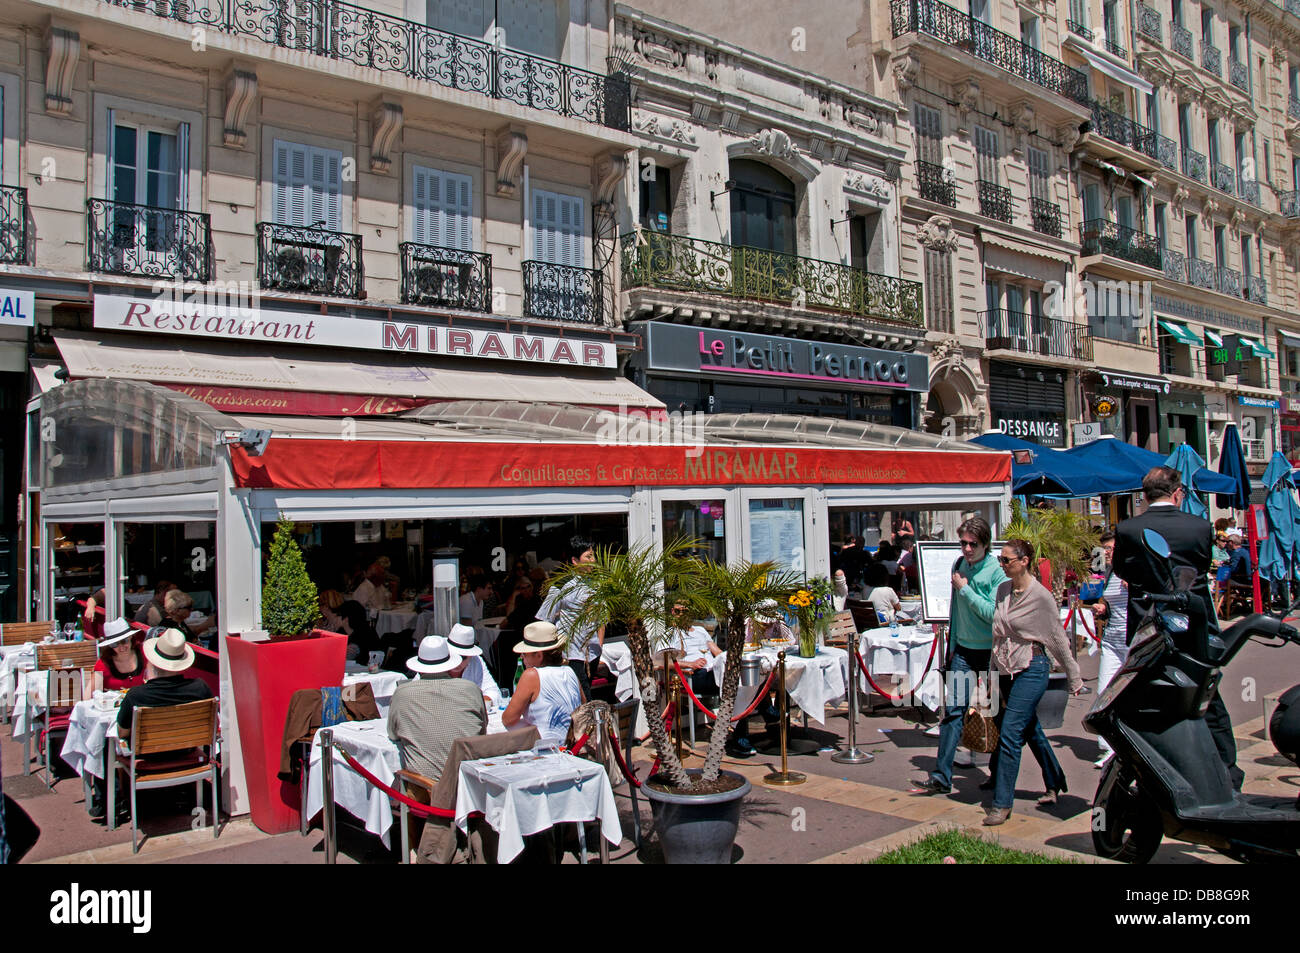 miramar bouillabaisse fish soup restaurant cafe bar pub marseilles stock photo royalty free